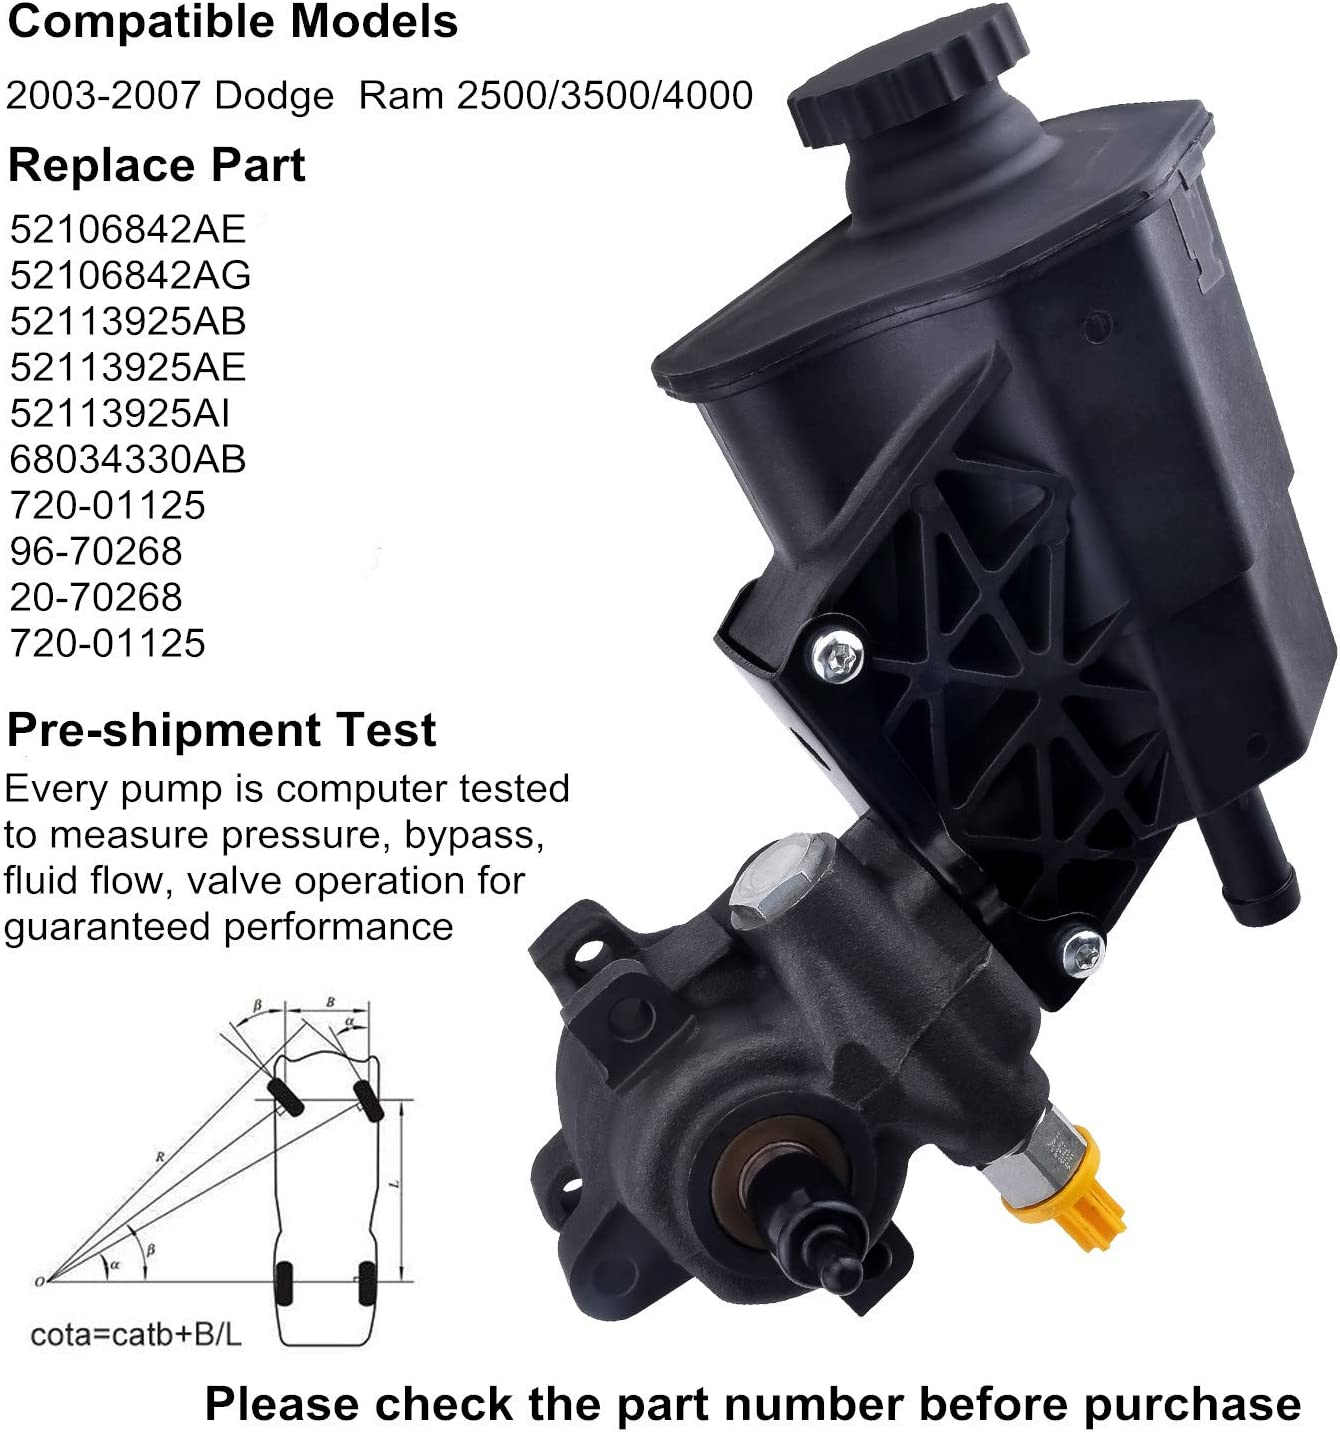 EVIL ENERGY Power Steering Pump Power Assist Pump Replacement Compatible with GM Chevrolet Silverado 2500HD//3500 GMC Sierra Yukon XL